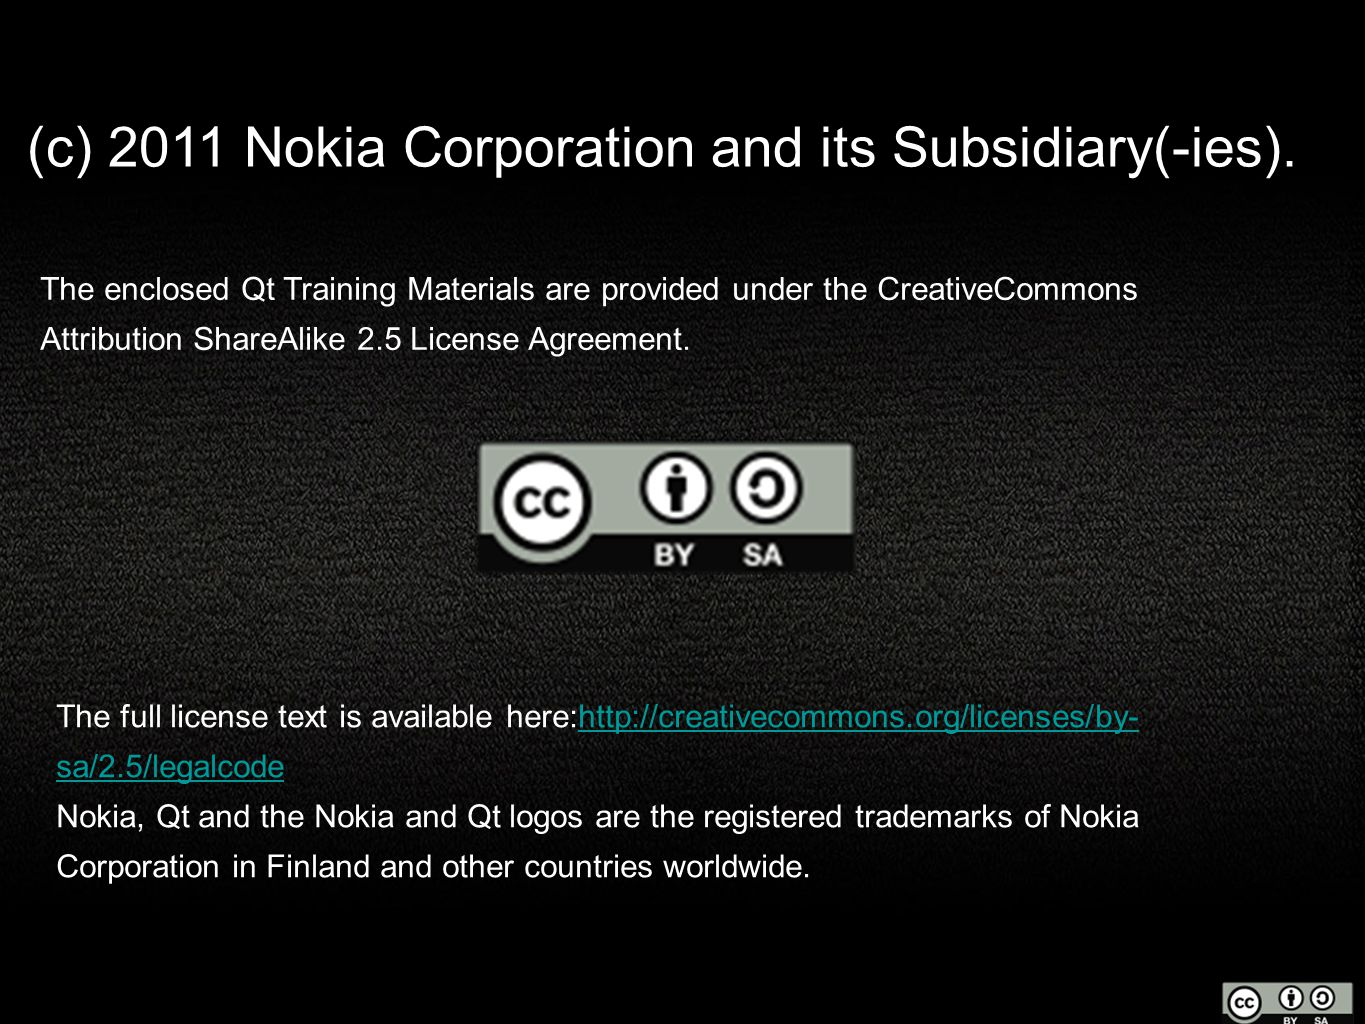 (c) 2011 Nokia Corporation and its Subsidiary(-ies).